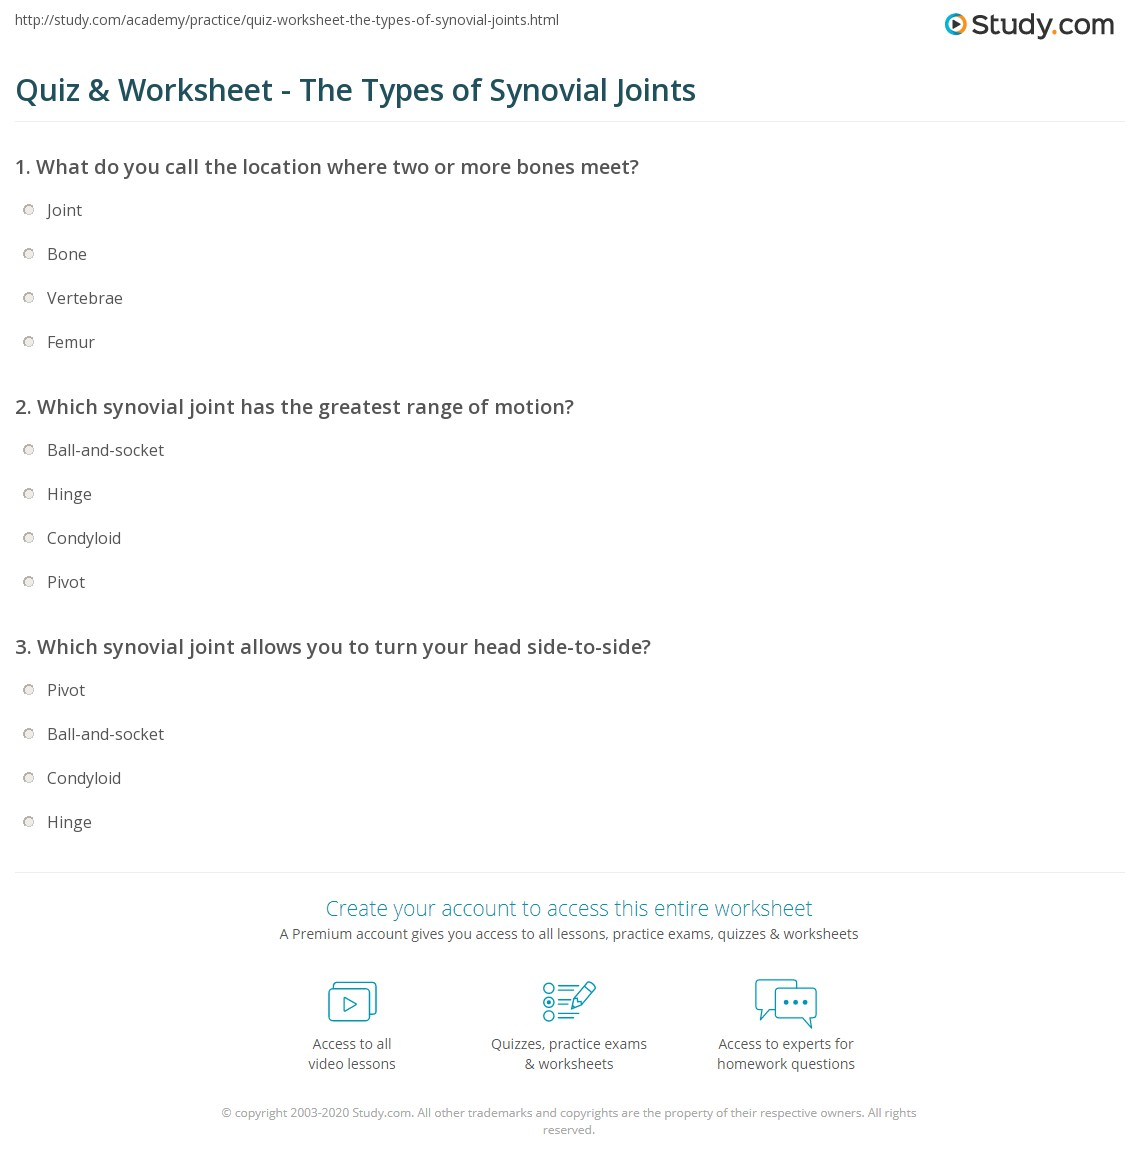 Quiz & Worksheet - The Types of Synovial Joints | Study.com